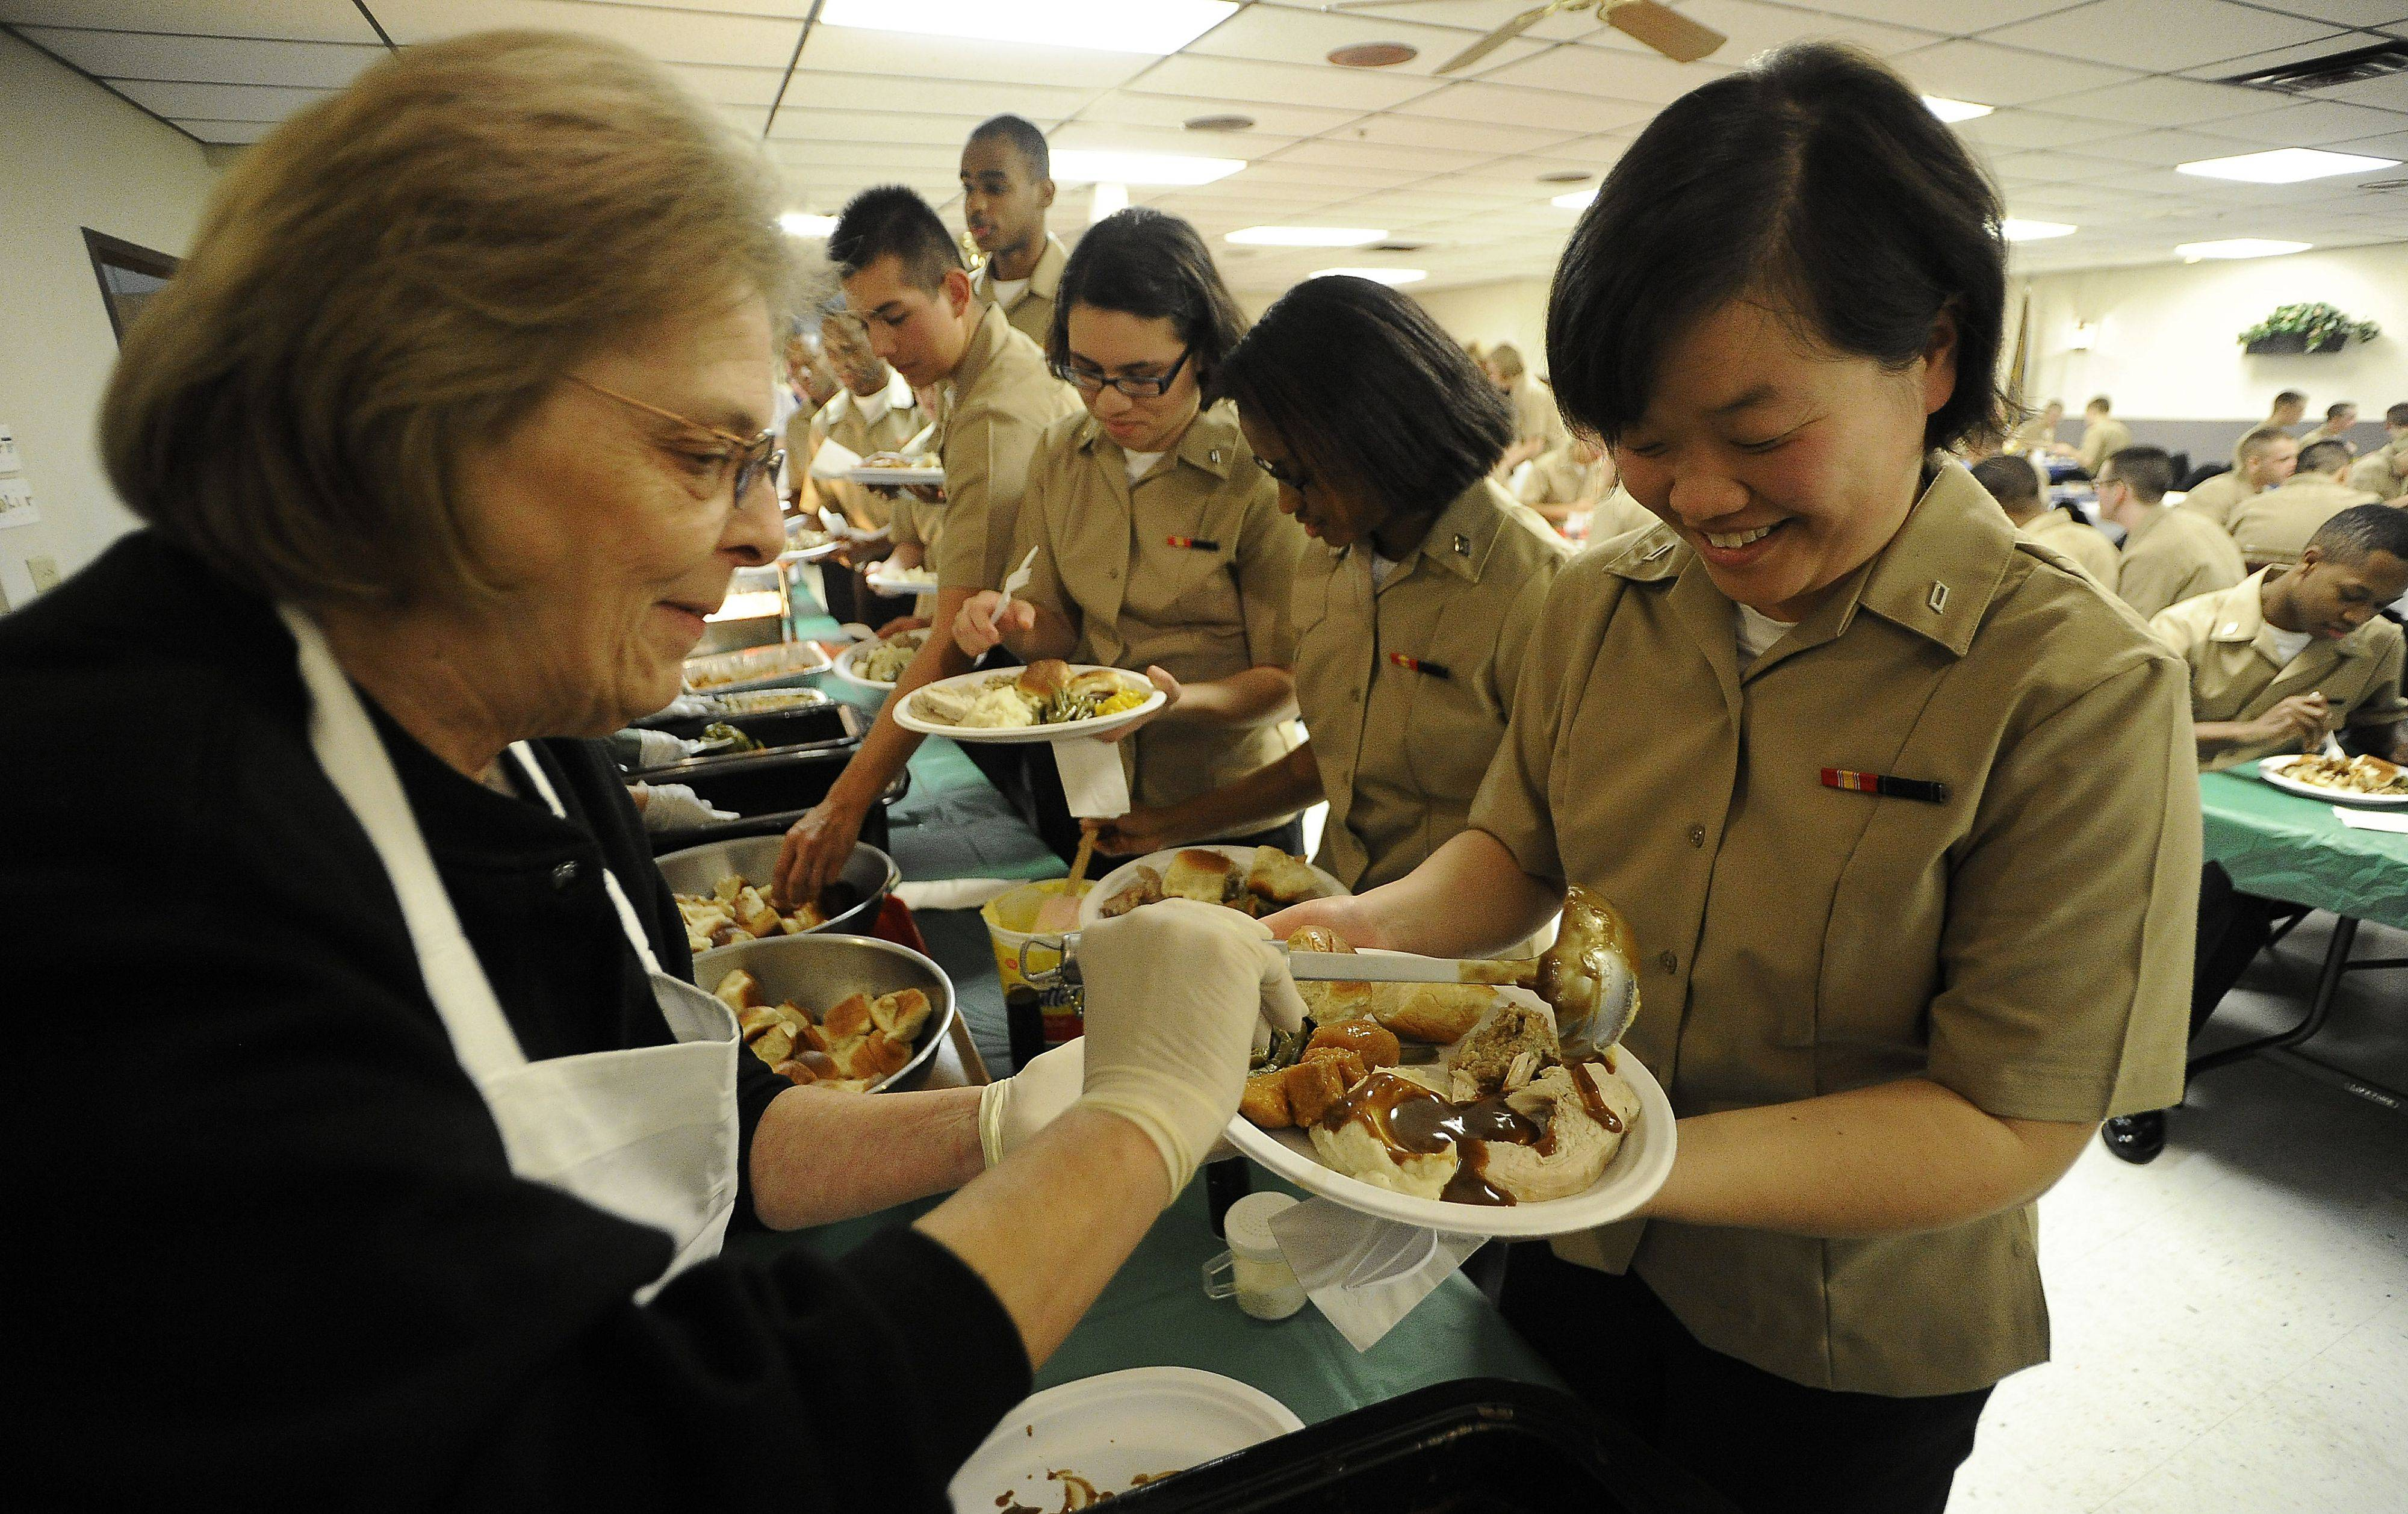 Darlene Dorsey of Wheeling carefully spreads gravy over the Thanksgiving turkey dinner of Sang Tian,24, of California at Wheeling Amvets on Thursday.